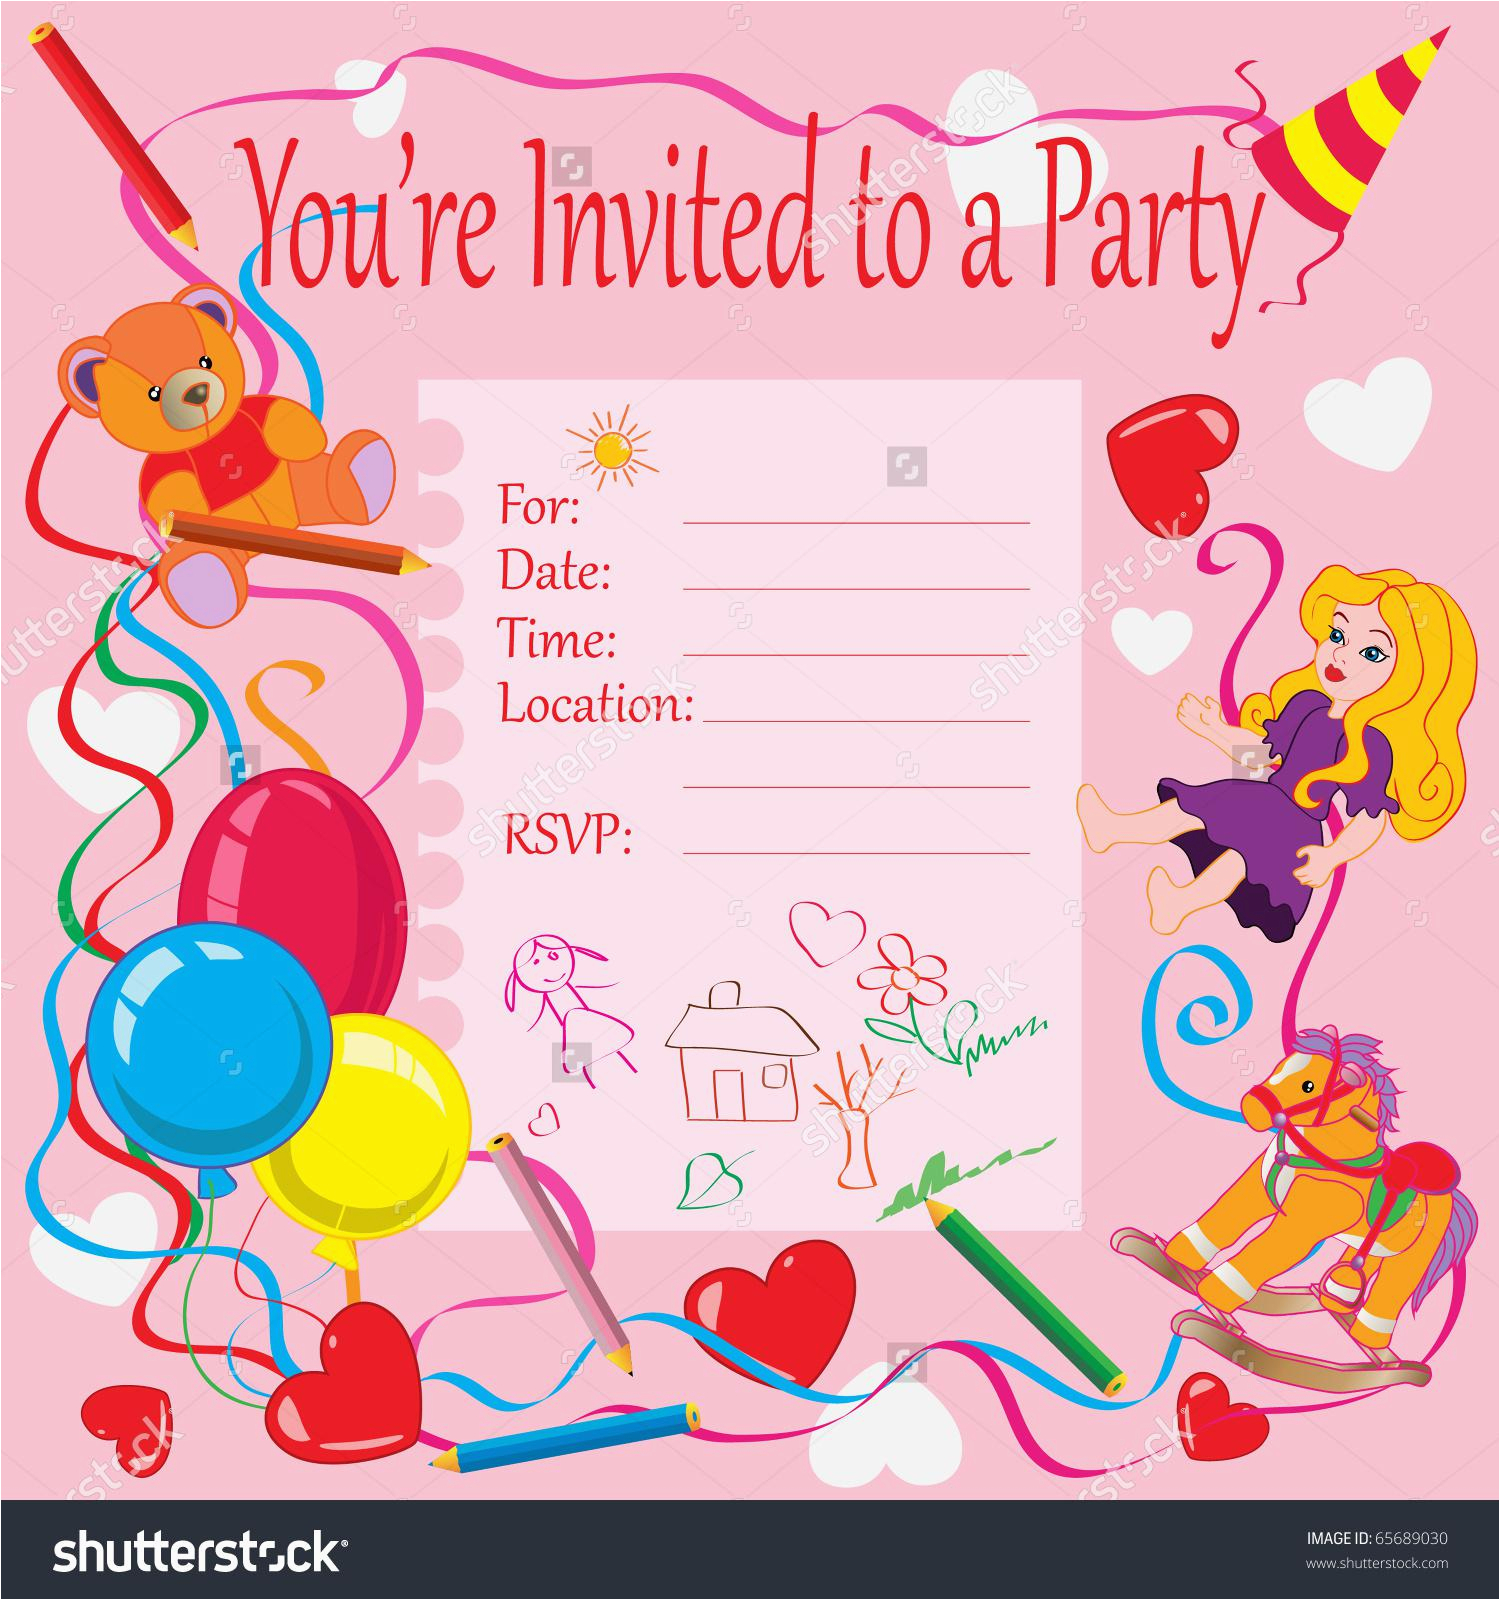 Create A Birthday Invitation Online for Free Make Your Own Birthday Party Invitations Free Printable